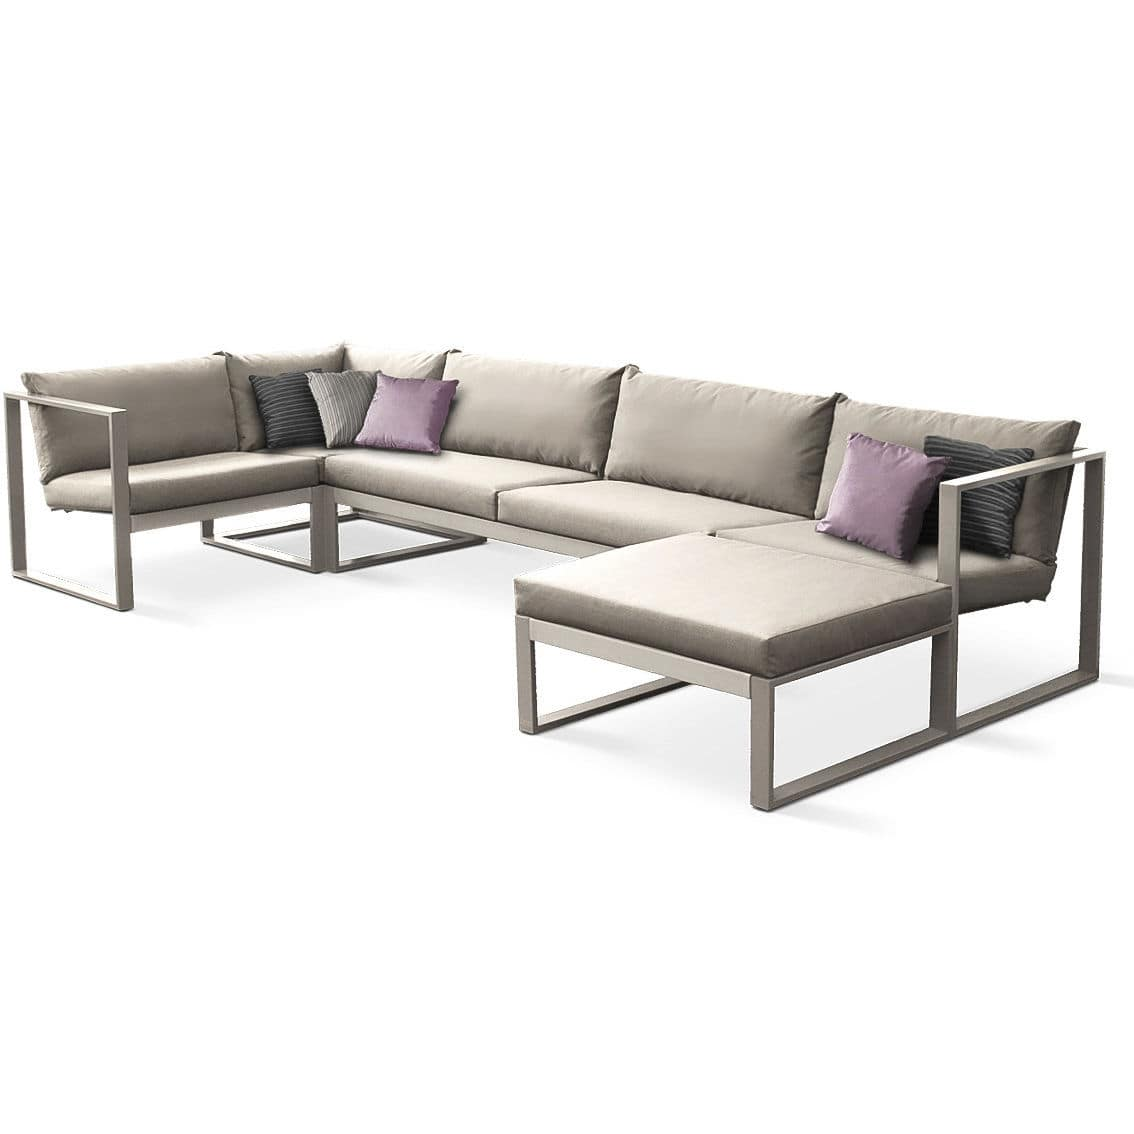 contemporary bench and table set / steel / garden / outdoor - cima, Garten und Bauen